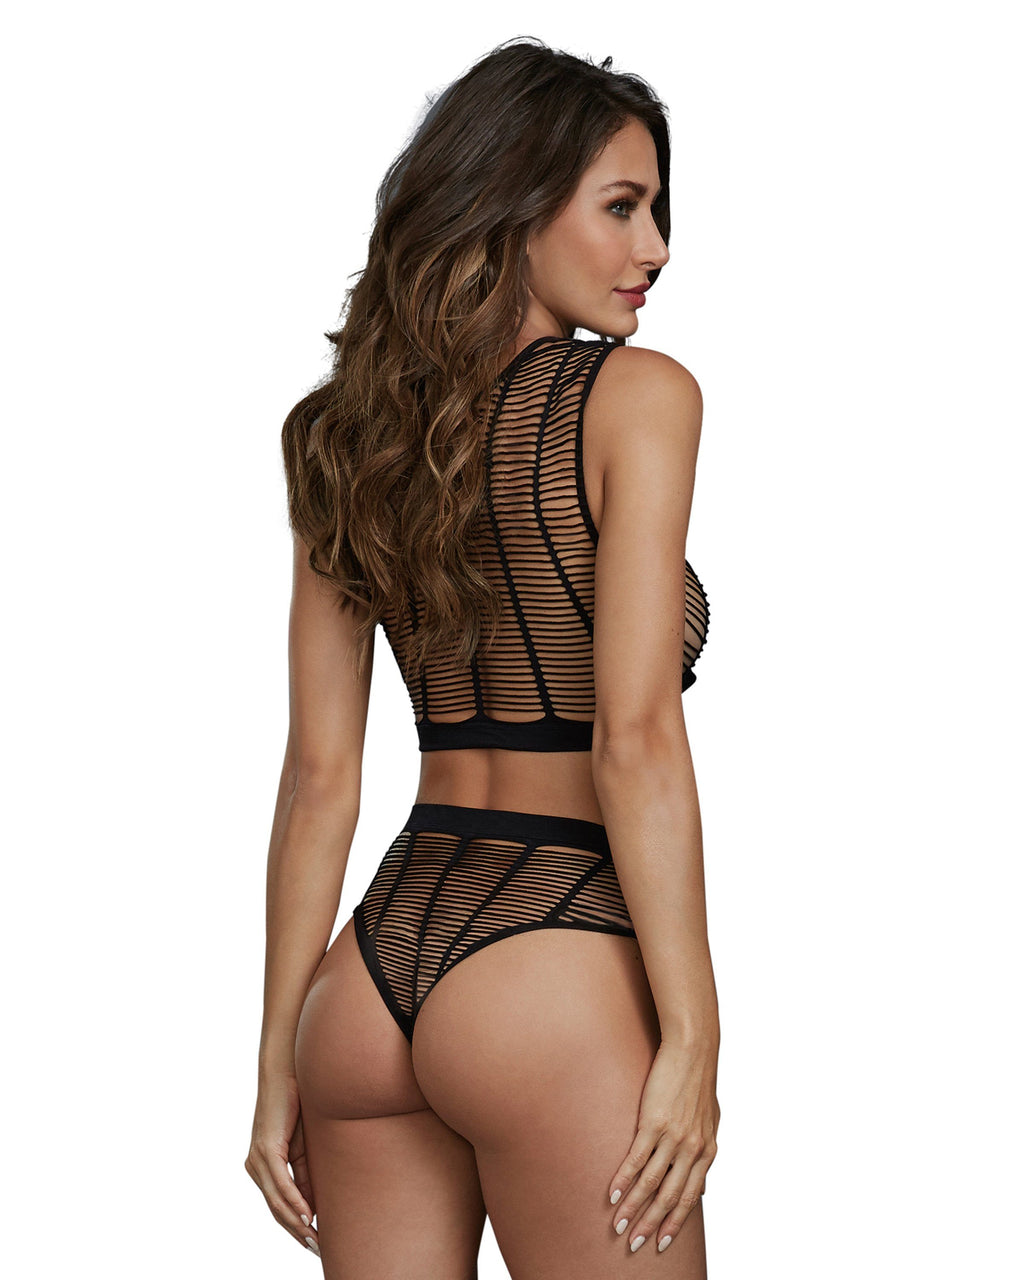 Caged Style Seamless Knit Crop Top and High-Waisted Panty Lingerie Set Dreamgirl International